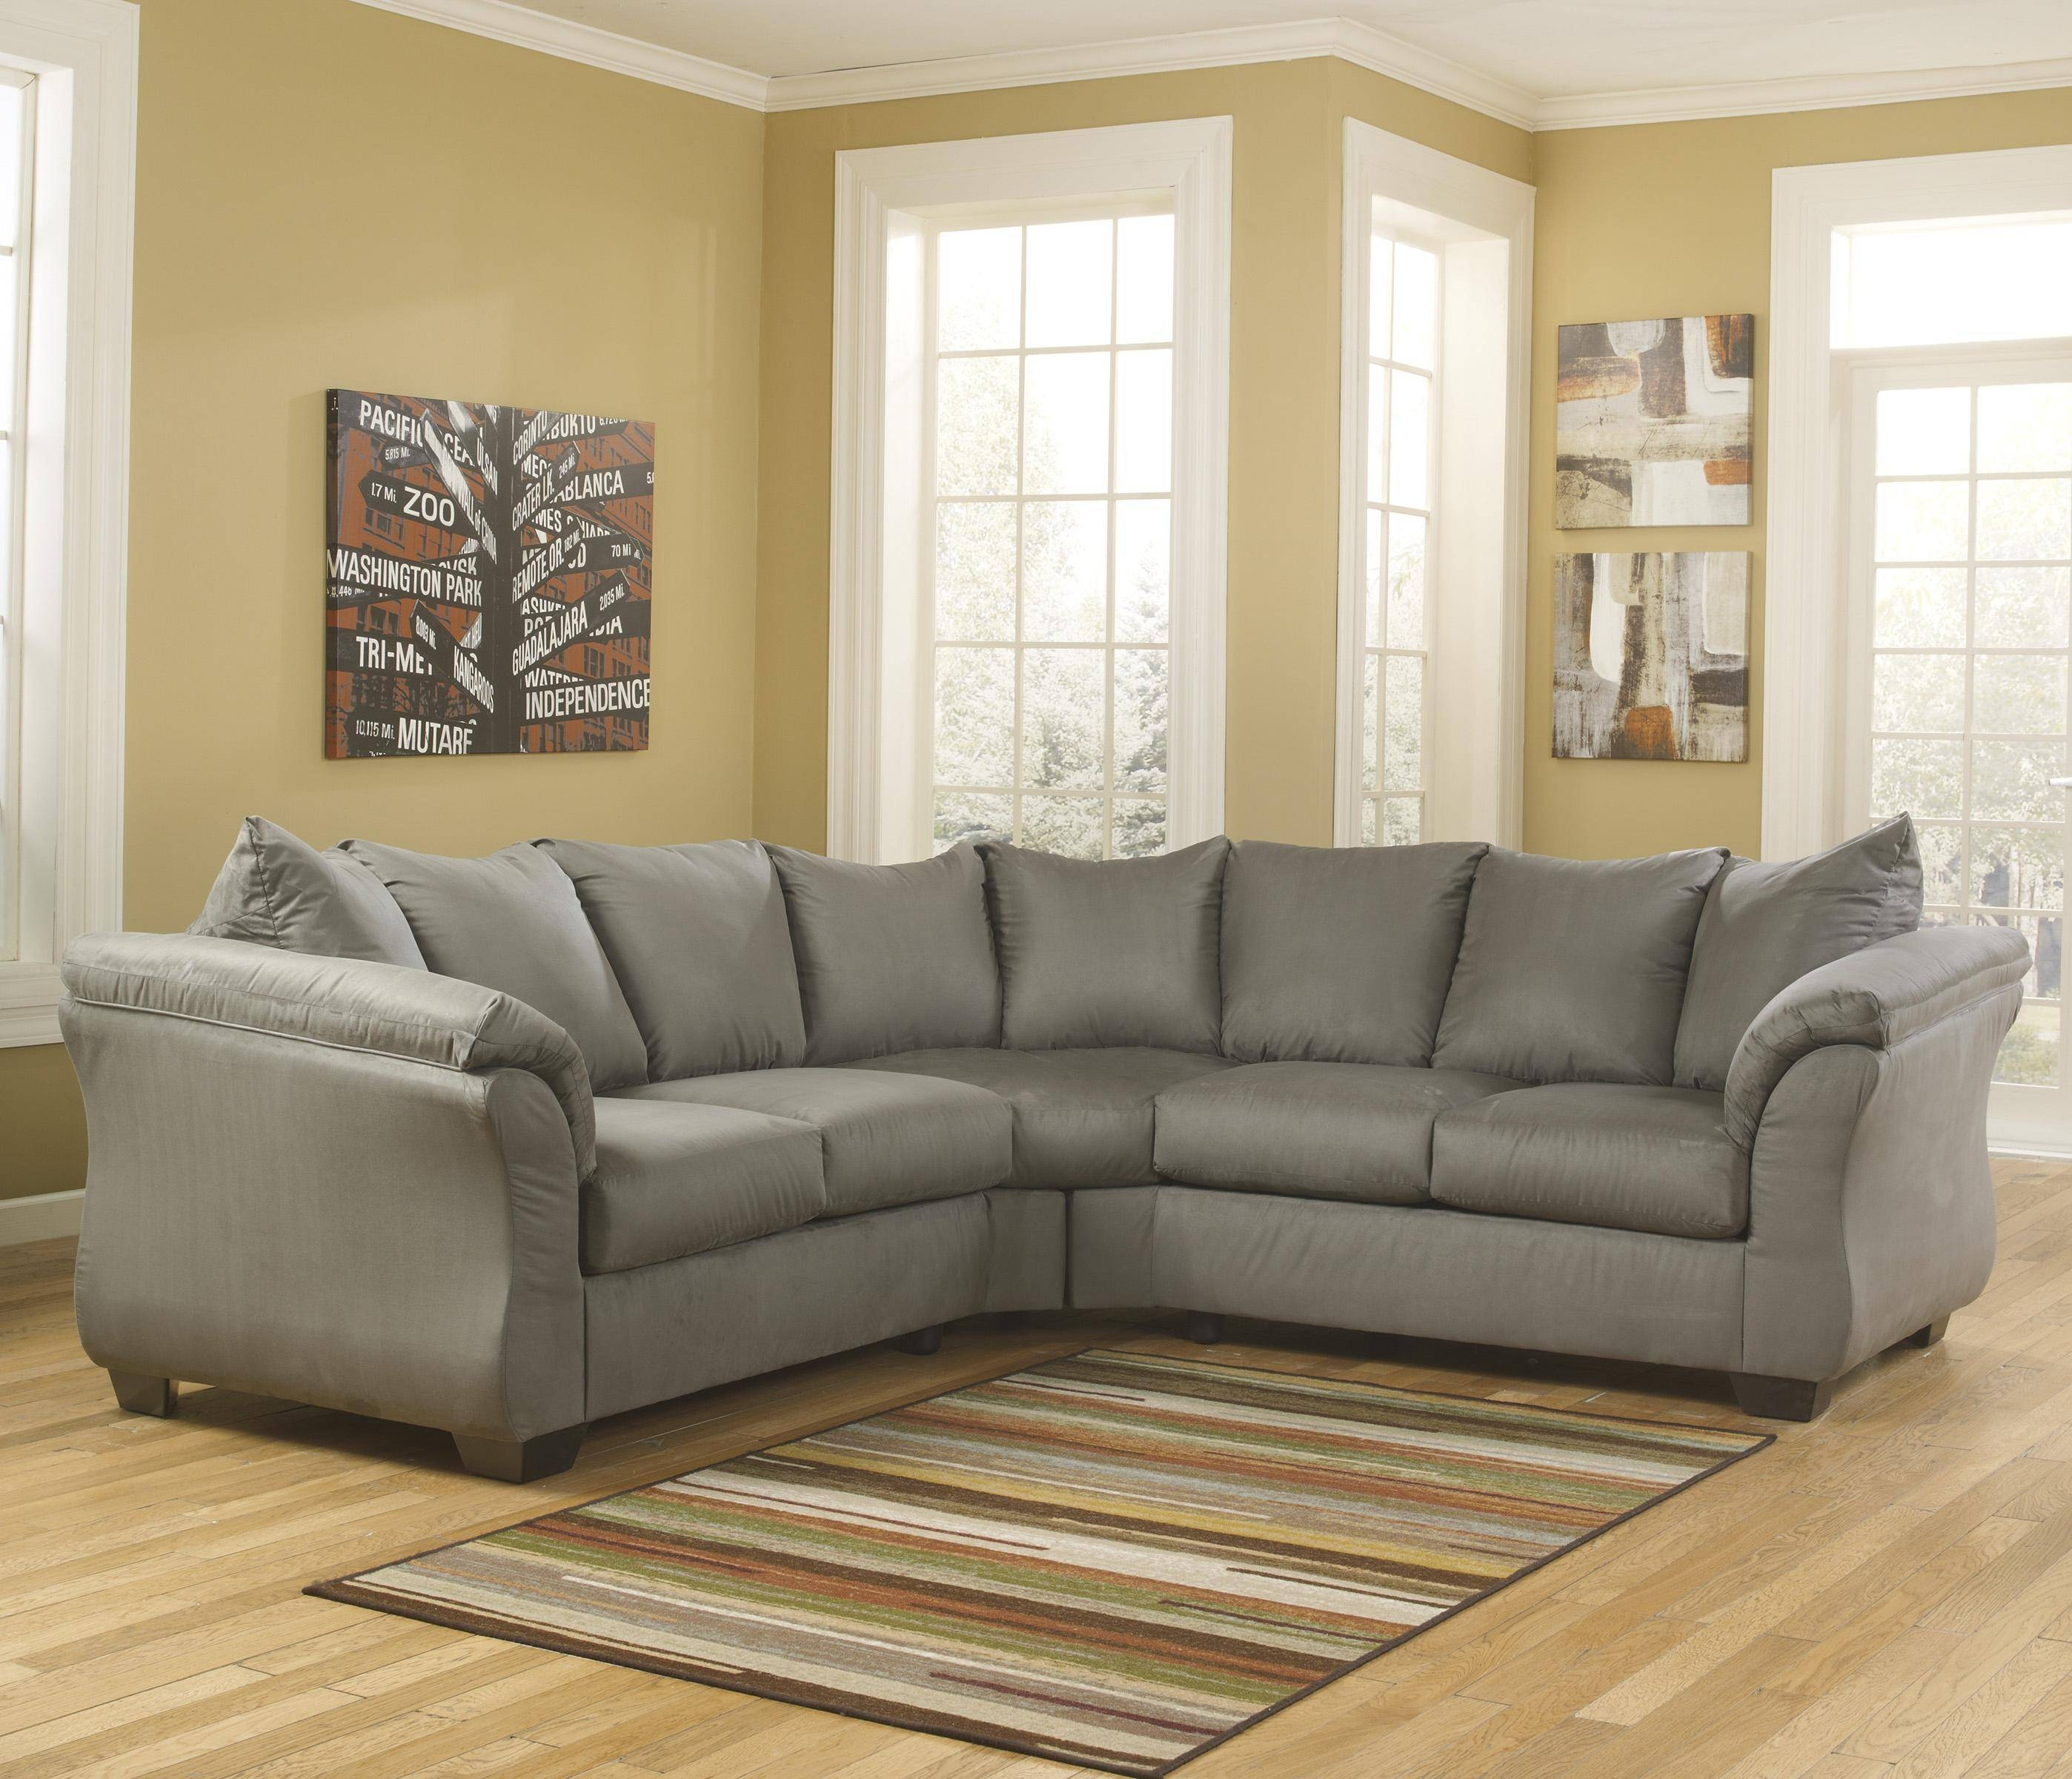 Contemporary Sectional Sofa With Sweeping Pillow Armssignature within Signature Design Sectional Sofas (Image 7 of 15)